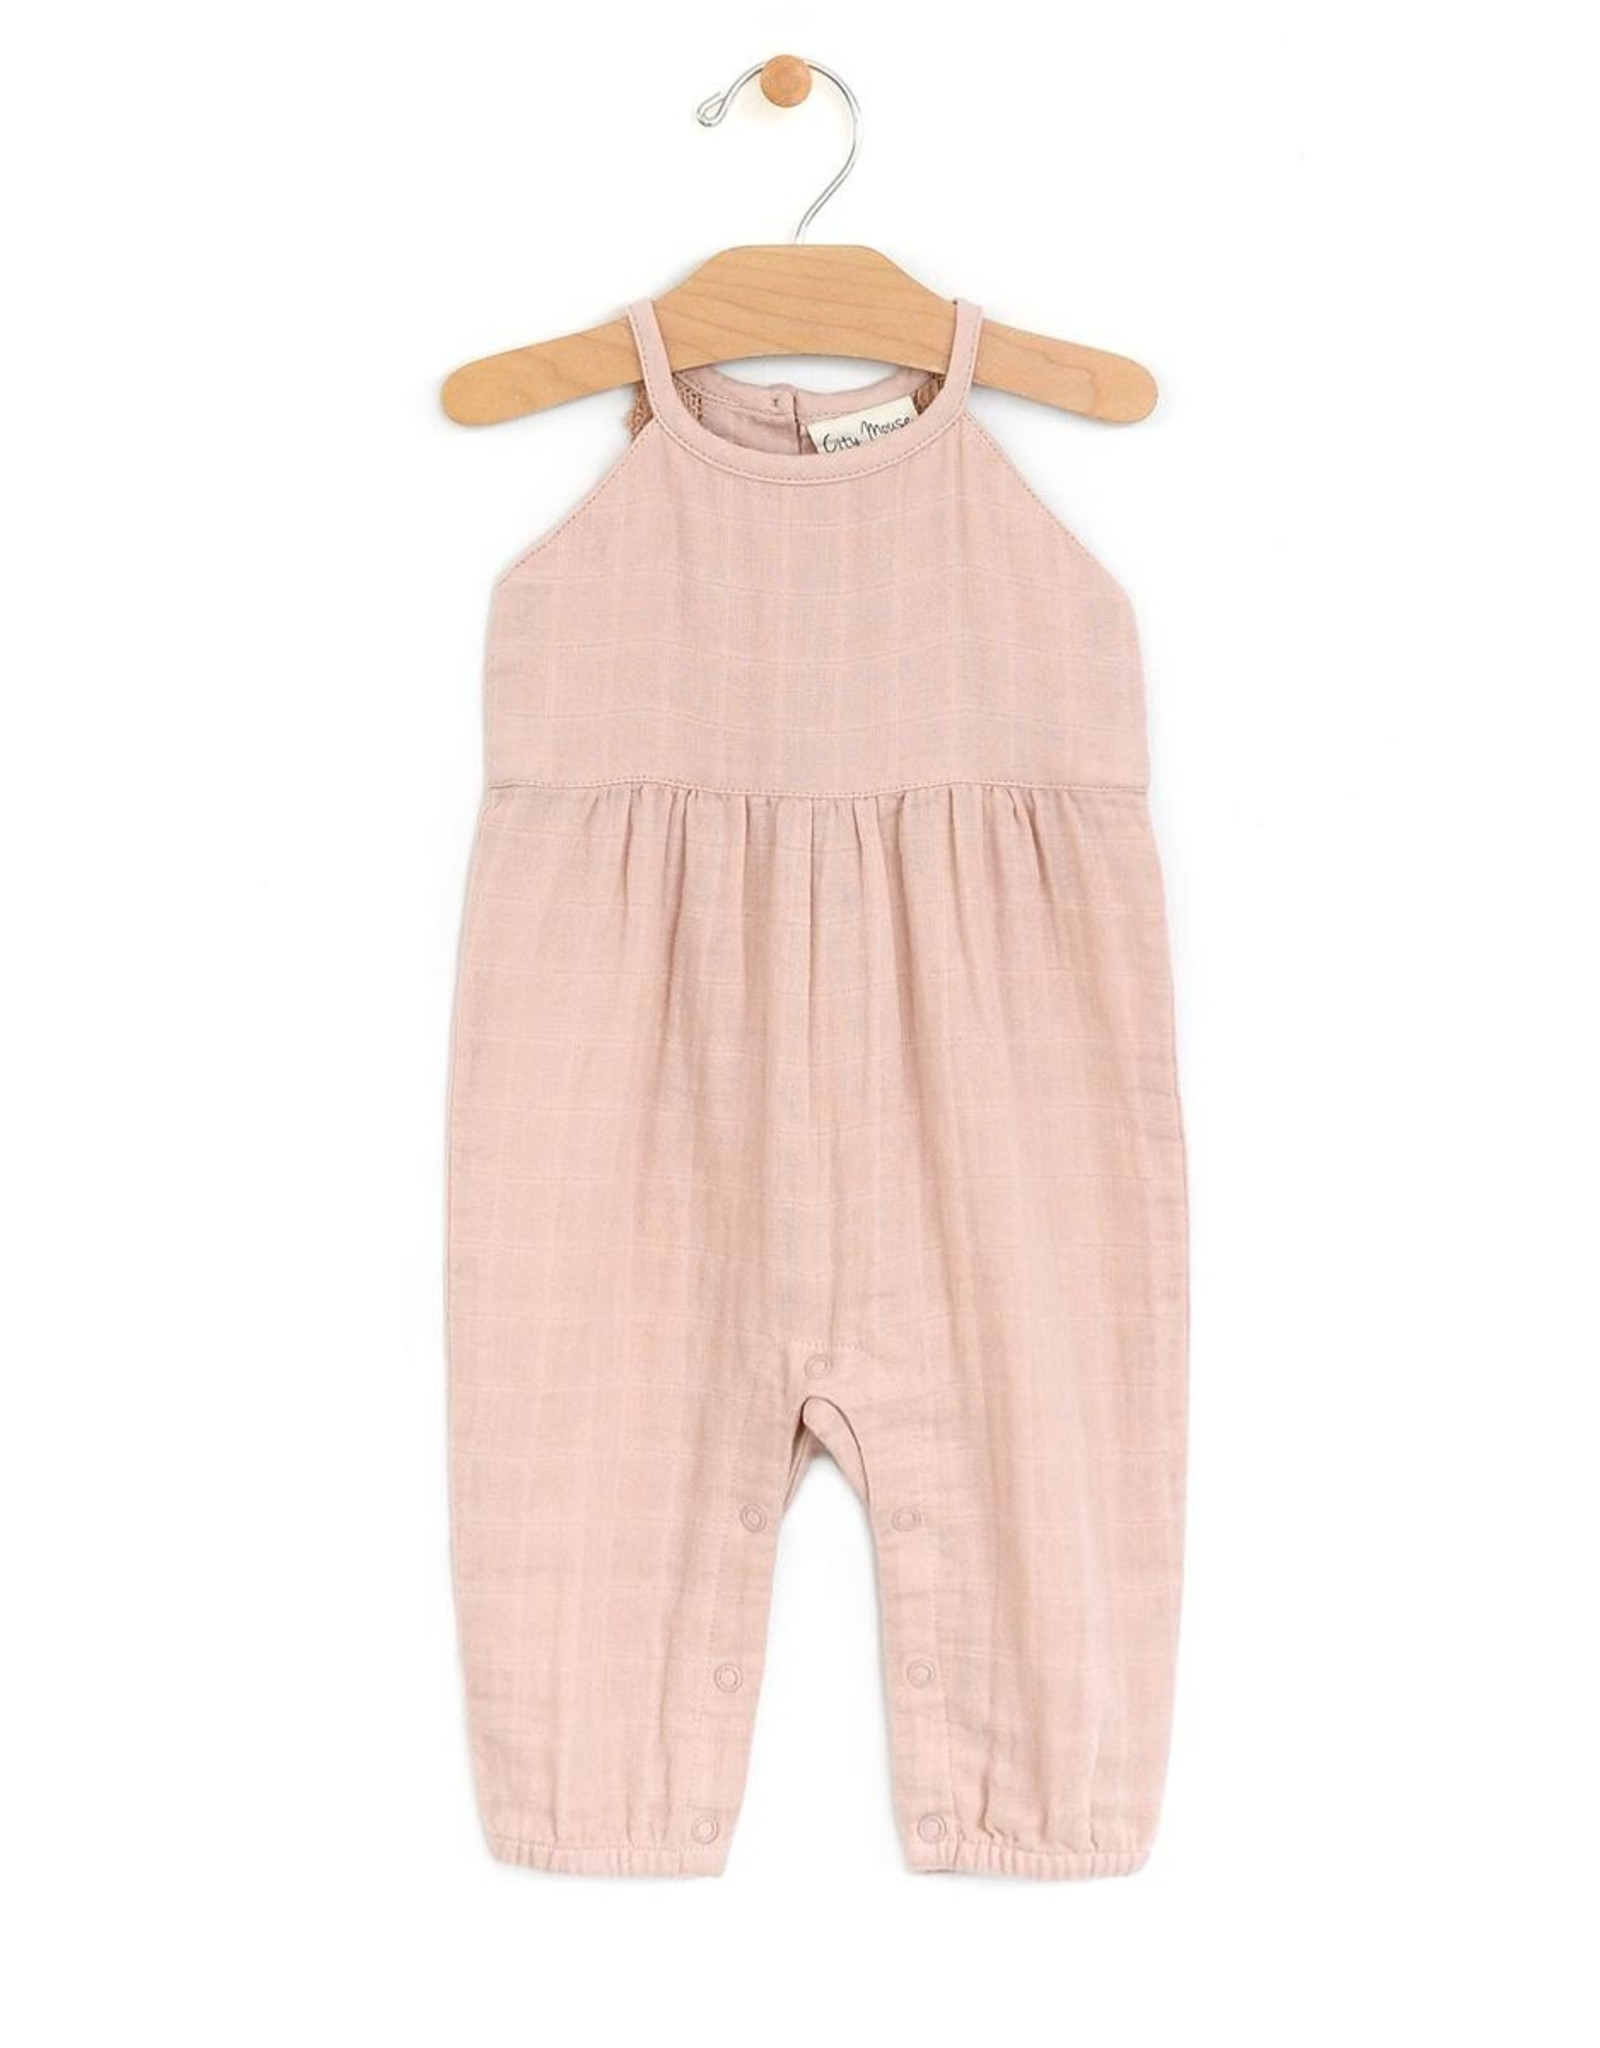 City Mouse Peach Muslin Long Romper with Lace Back